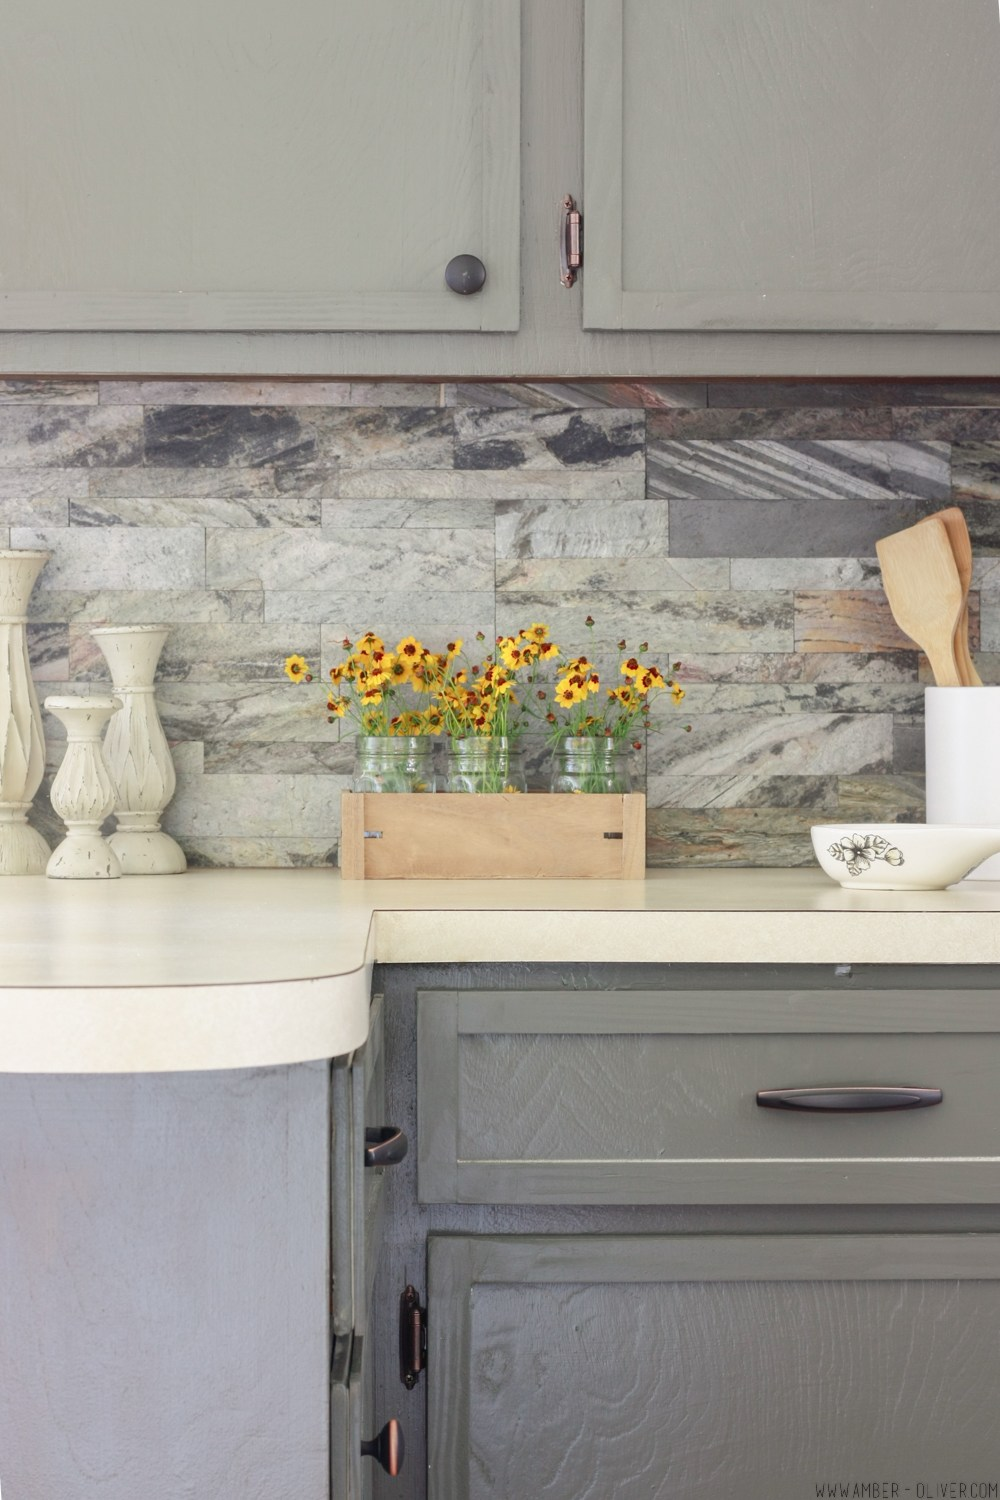 DIY Peel and Stick Backsplash